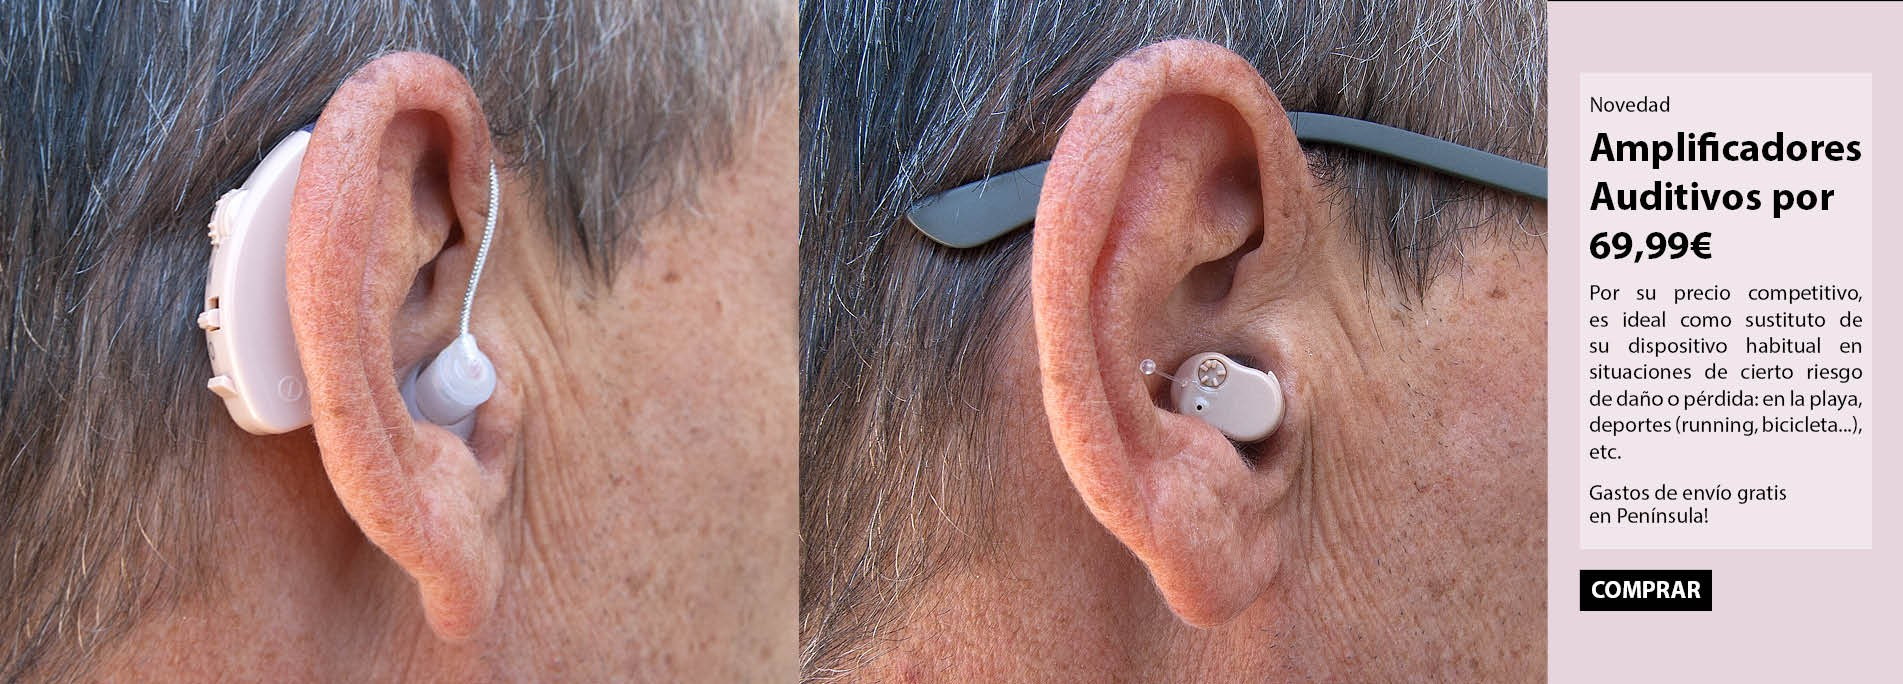 Hearing Aid amplifier